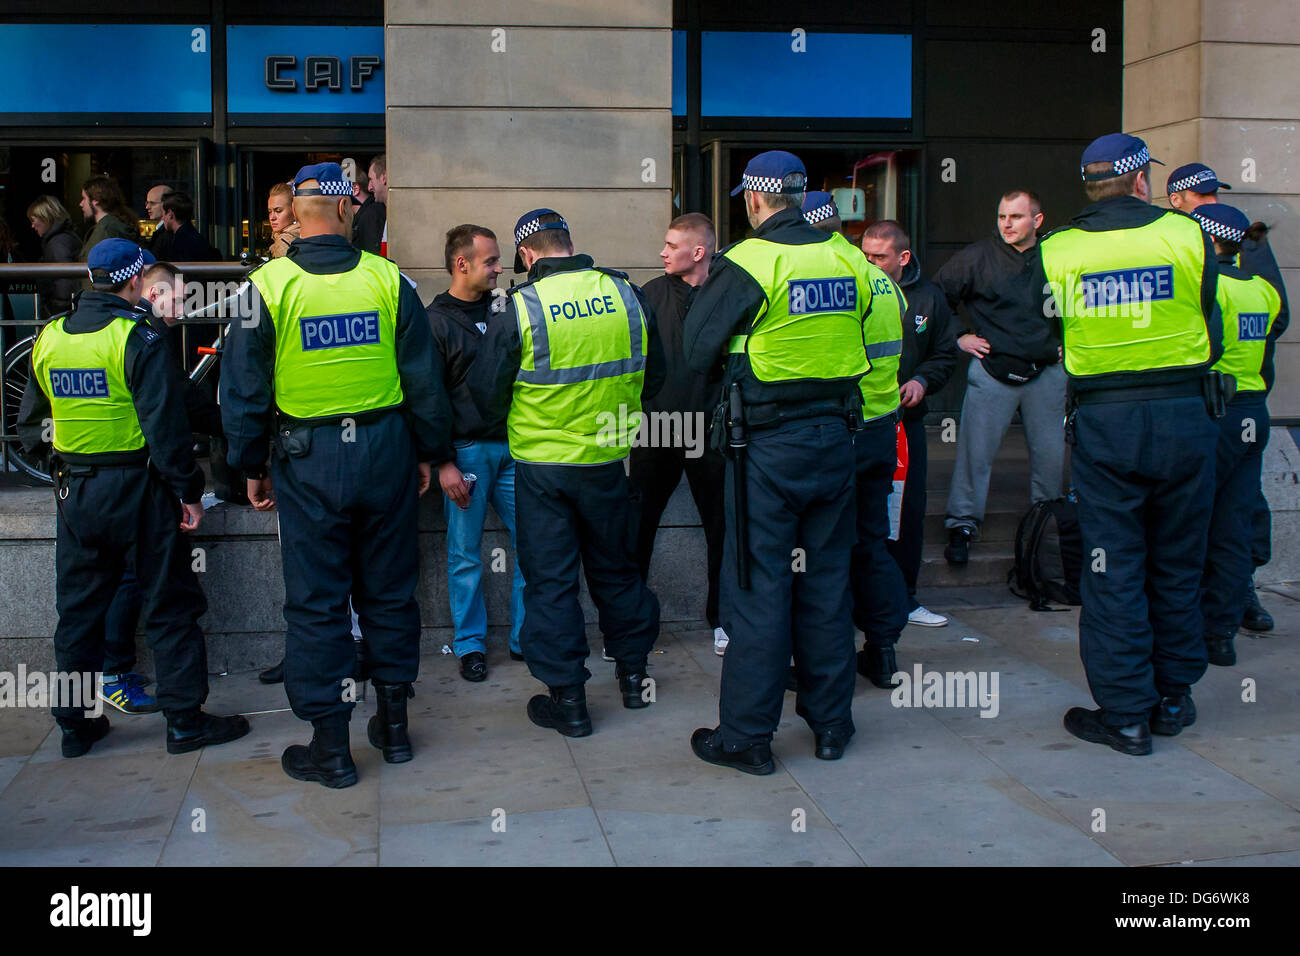 London, UK. 15th October 2013. Police perform stop and search procedures on Polish fans at Westminster prior to tonight's World Cup game with England. Westminster, London, UK 15 Oct 2013. Credit:  Guy Bell/Alamy Live News - Stock Image